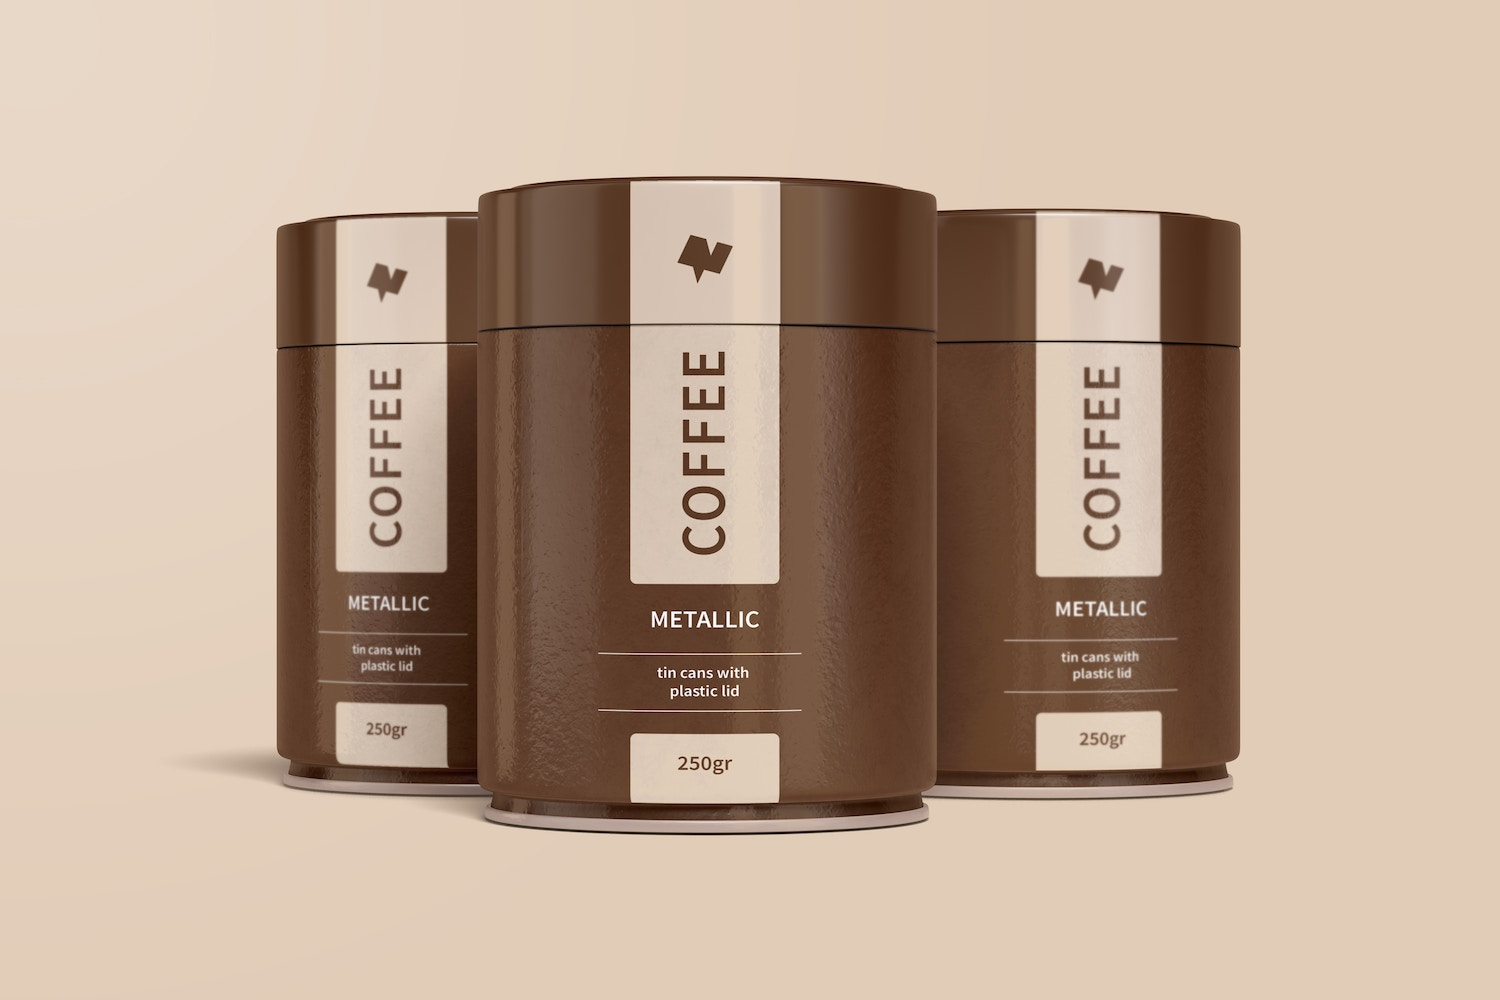 Are you designing a coffee brand? This mockup is for you!